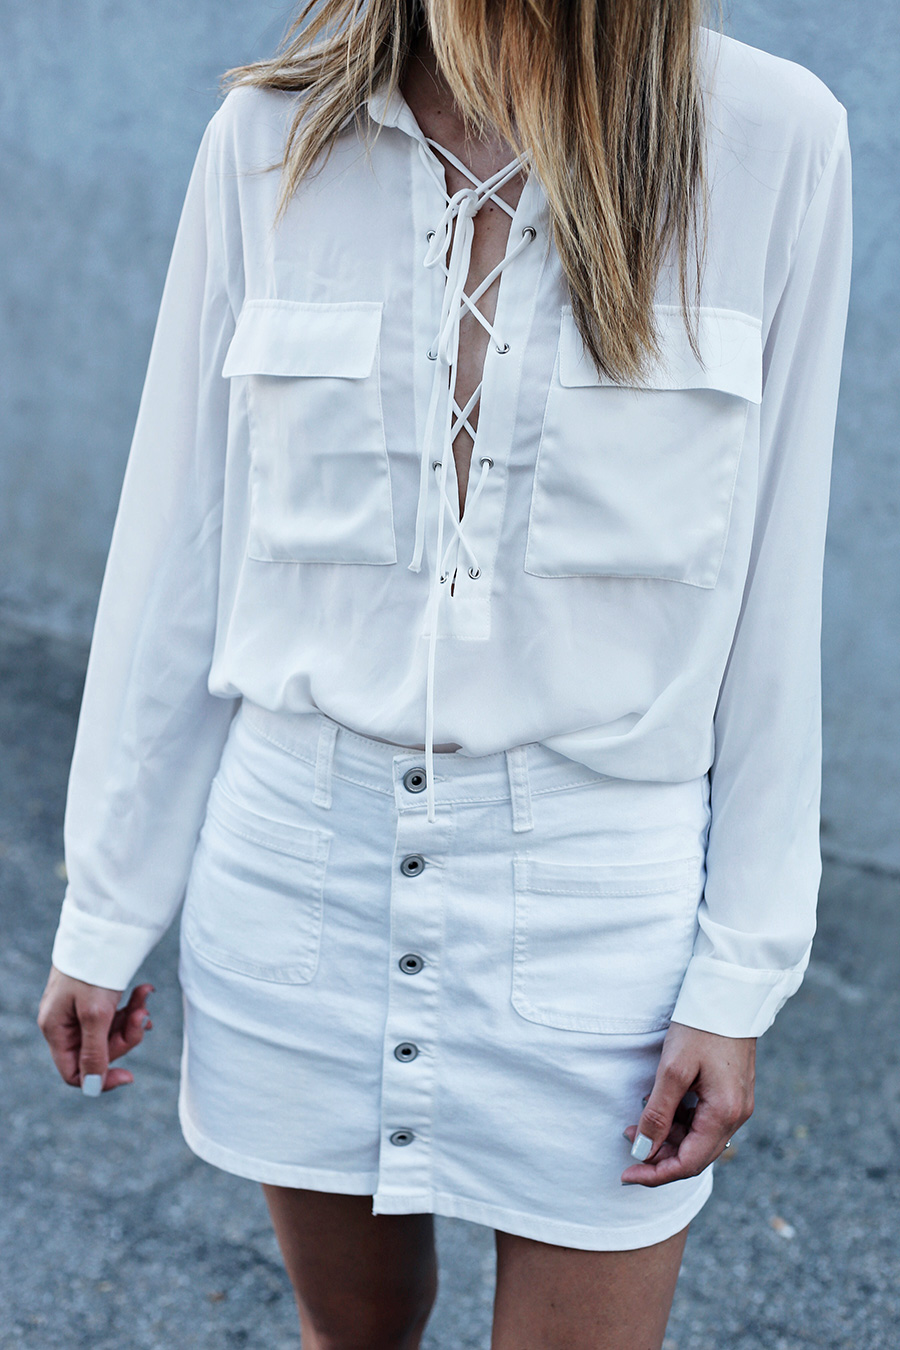 Forever 21 lace up blouse nicholas kirkwood loafers the real real 4